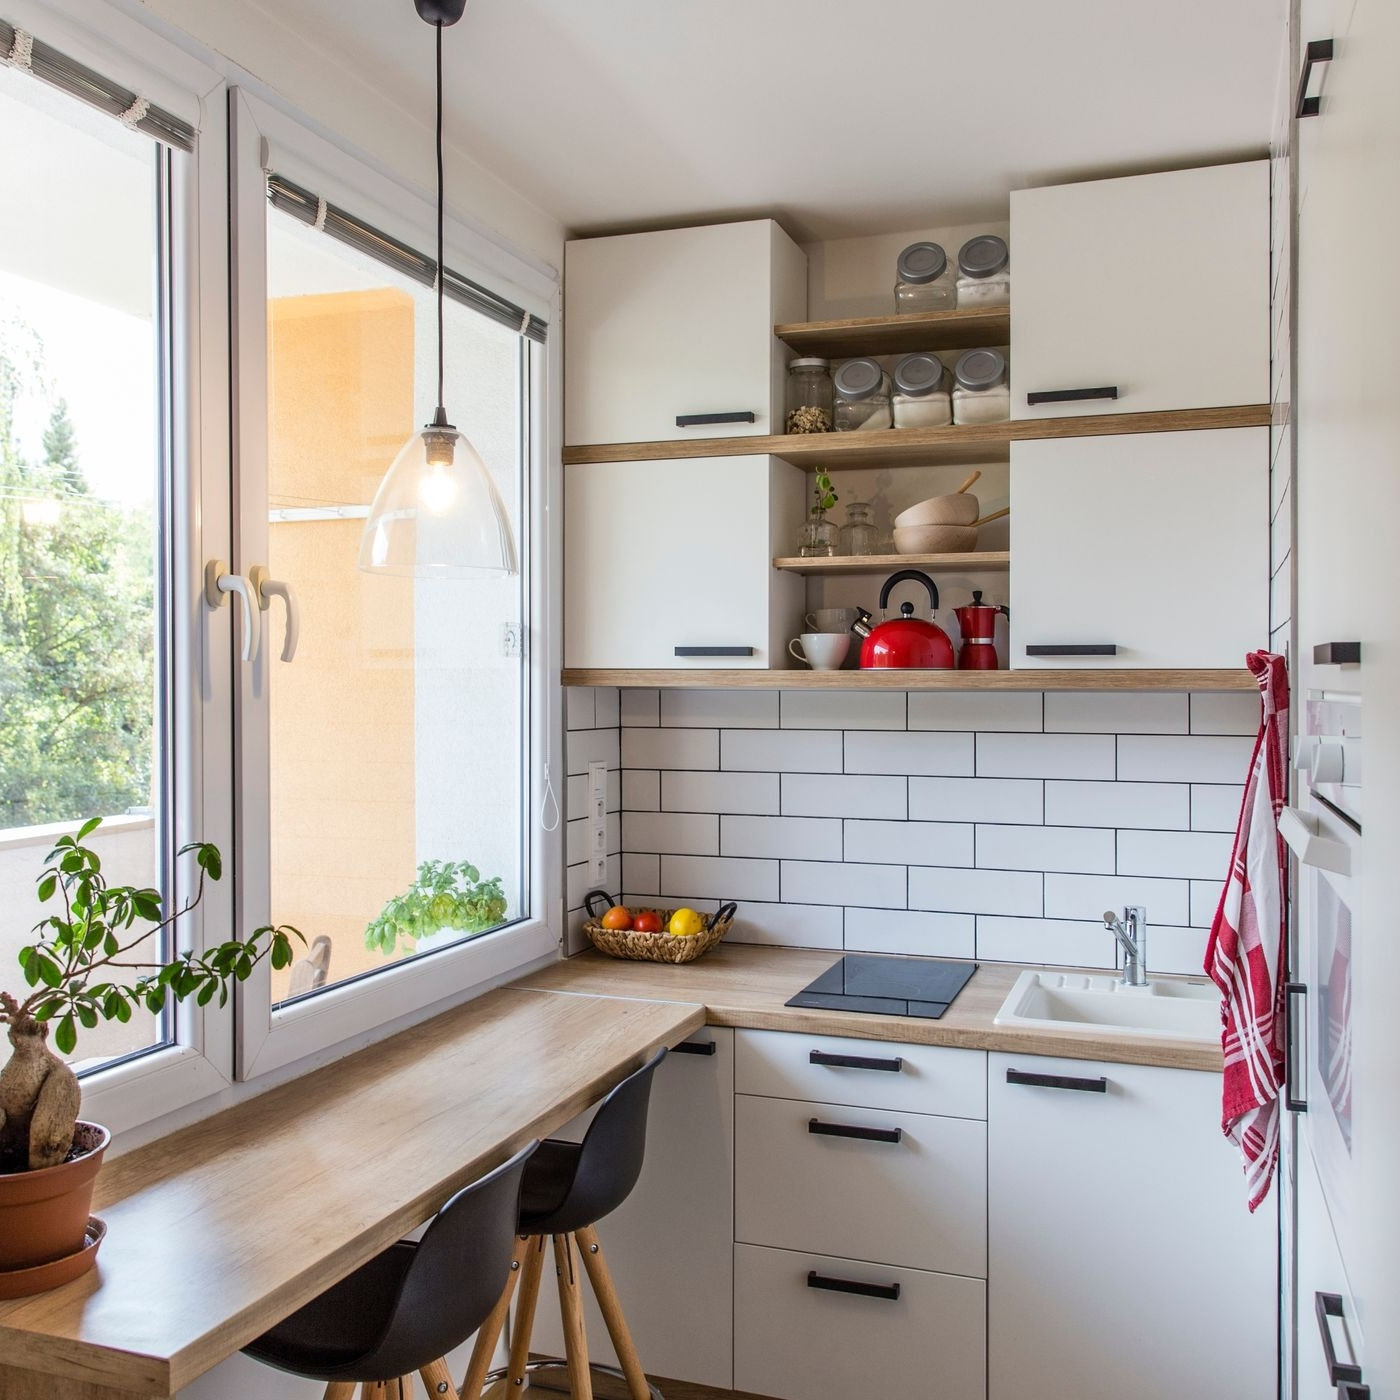 11 Of The Best Micro Apartments From Around The World Curbed 10+ Micro Apartment Design Plans Inspirations